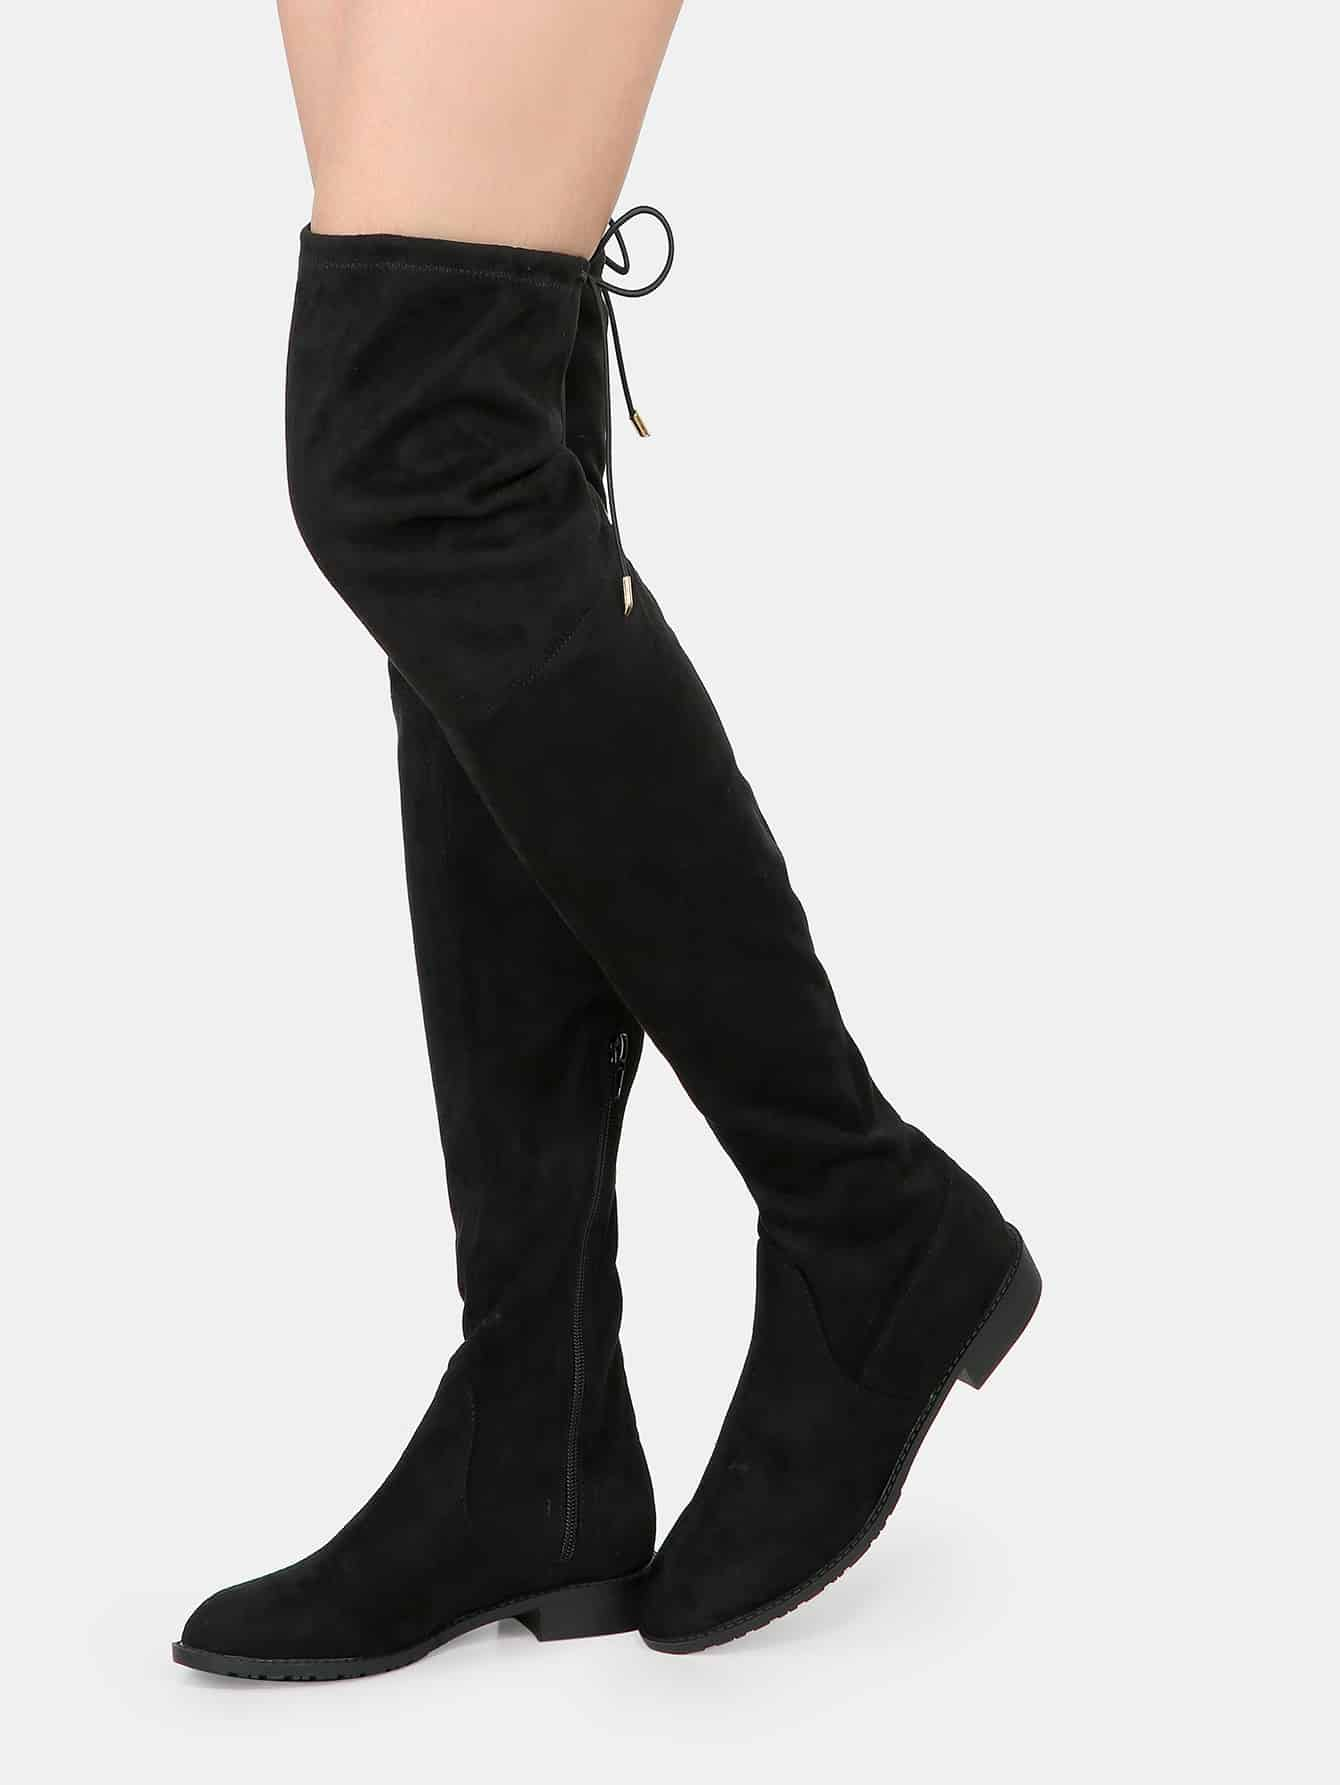 Thigh High Flat Boots Shoes